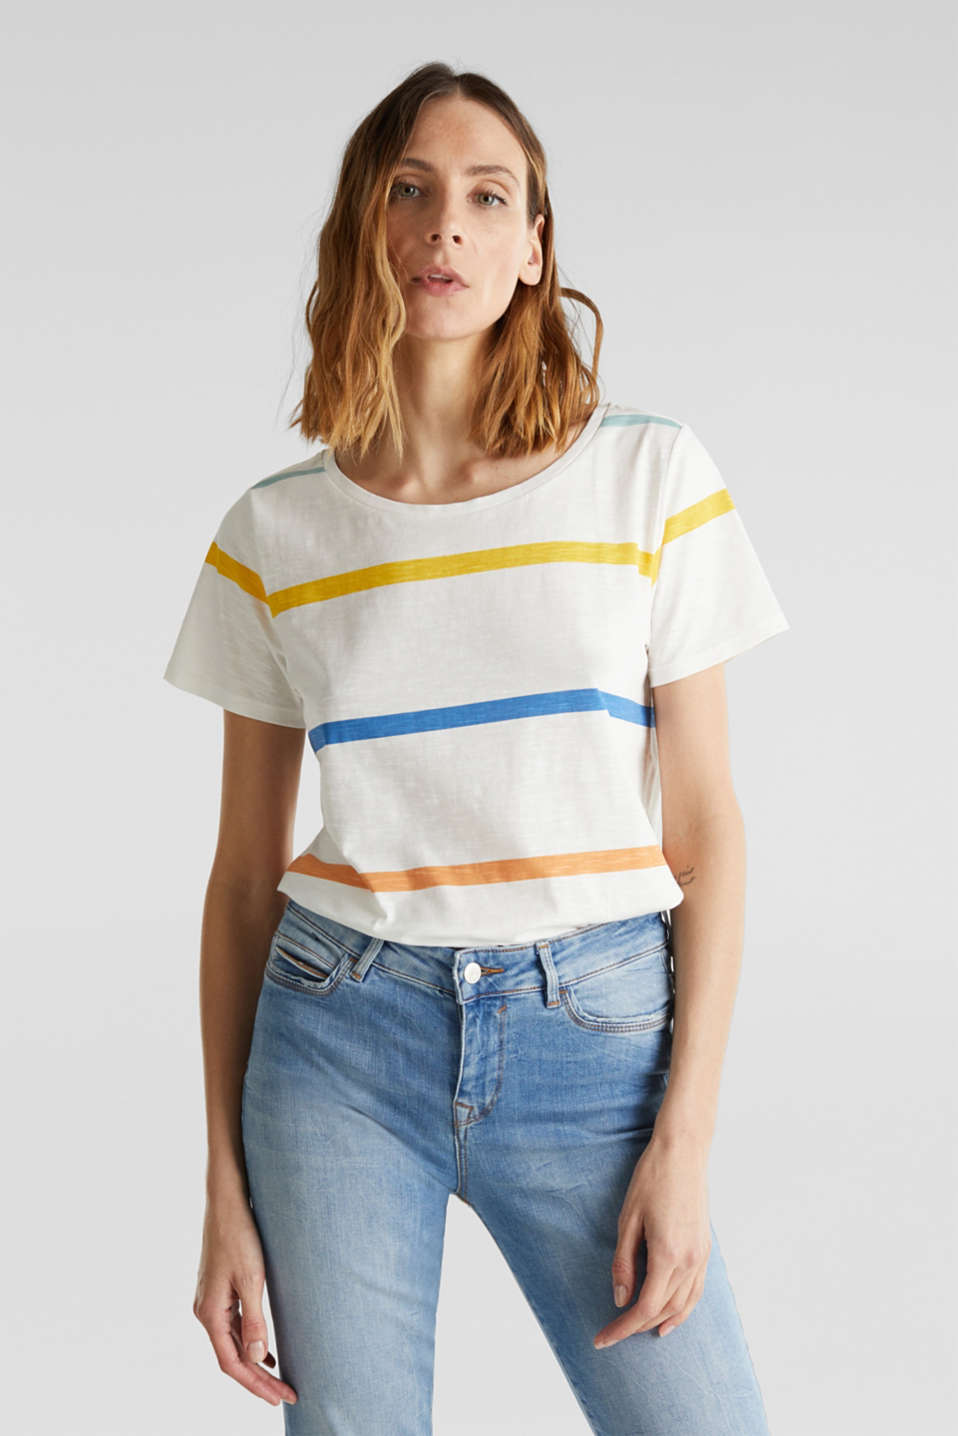 Slub top with stripes, 100% cotton